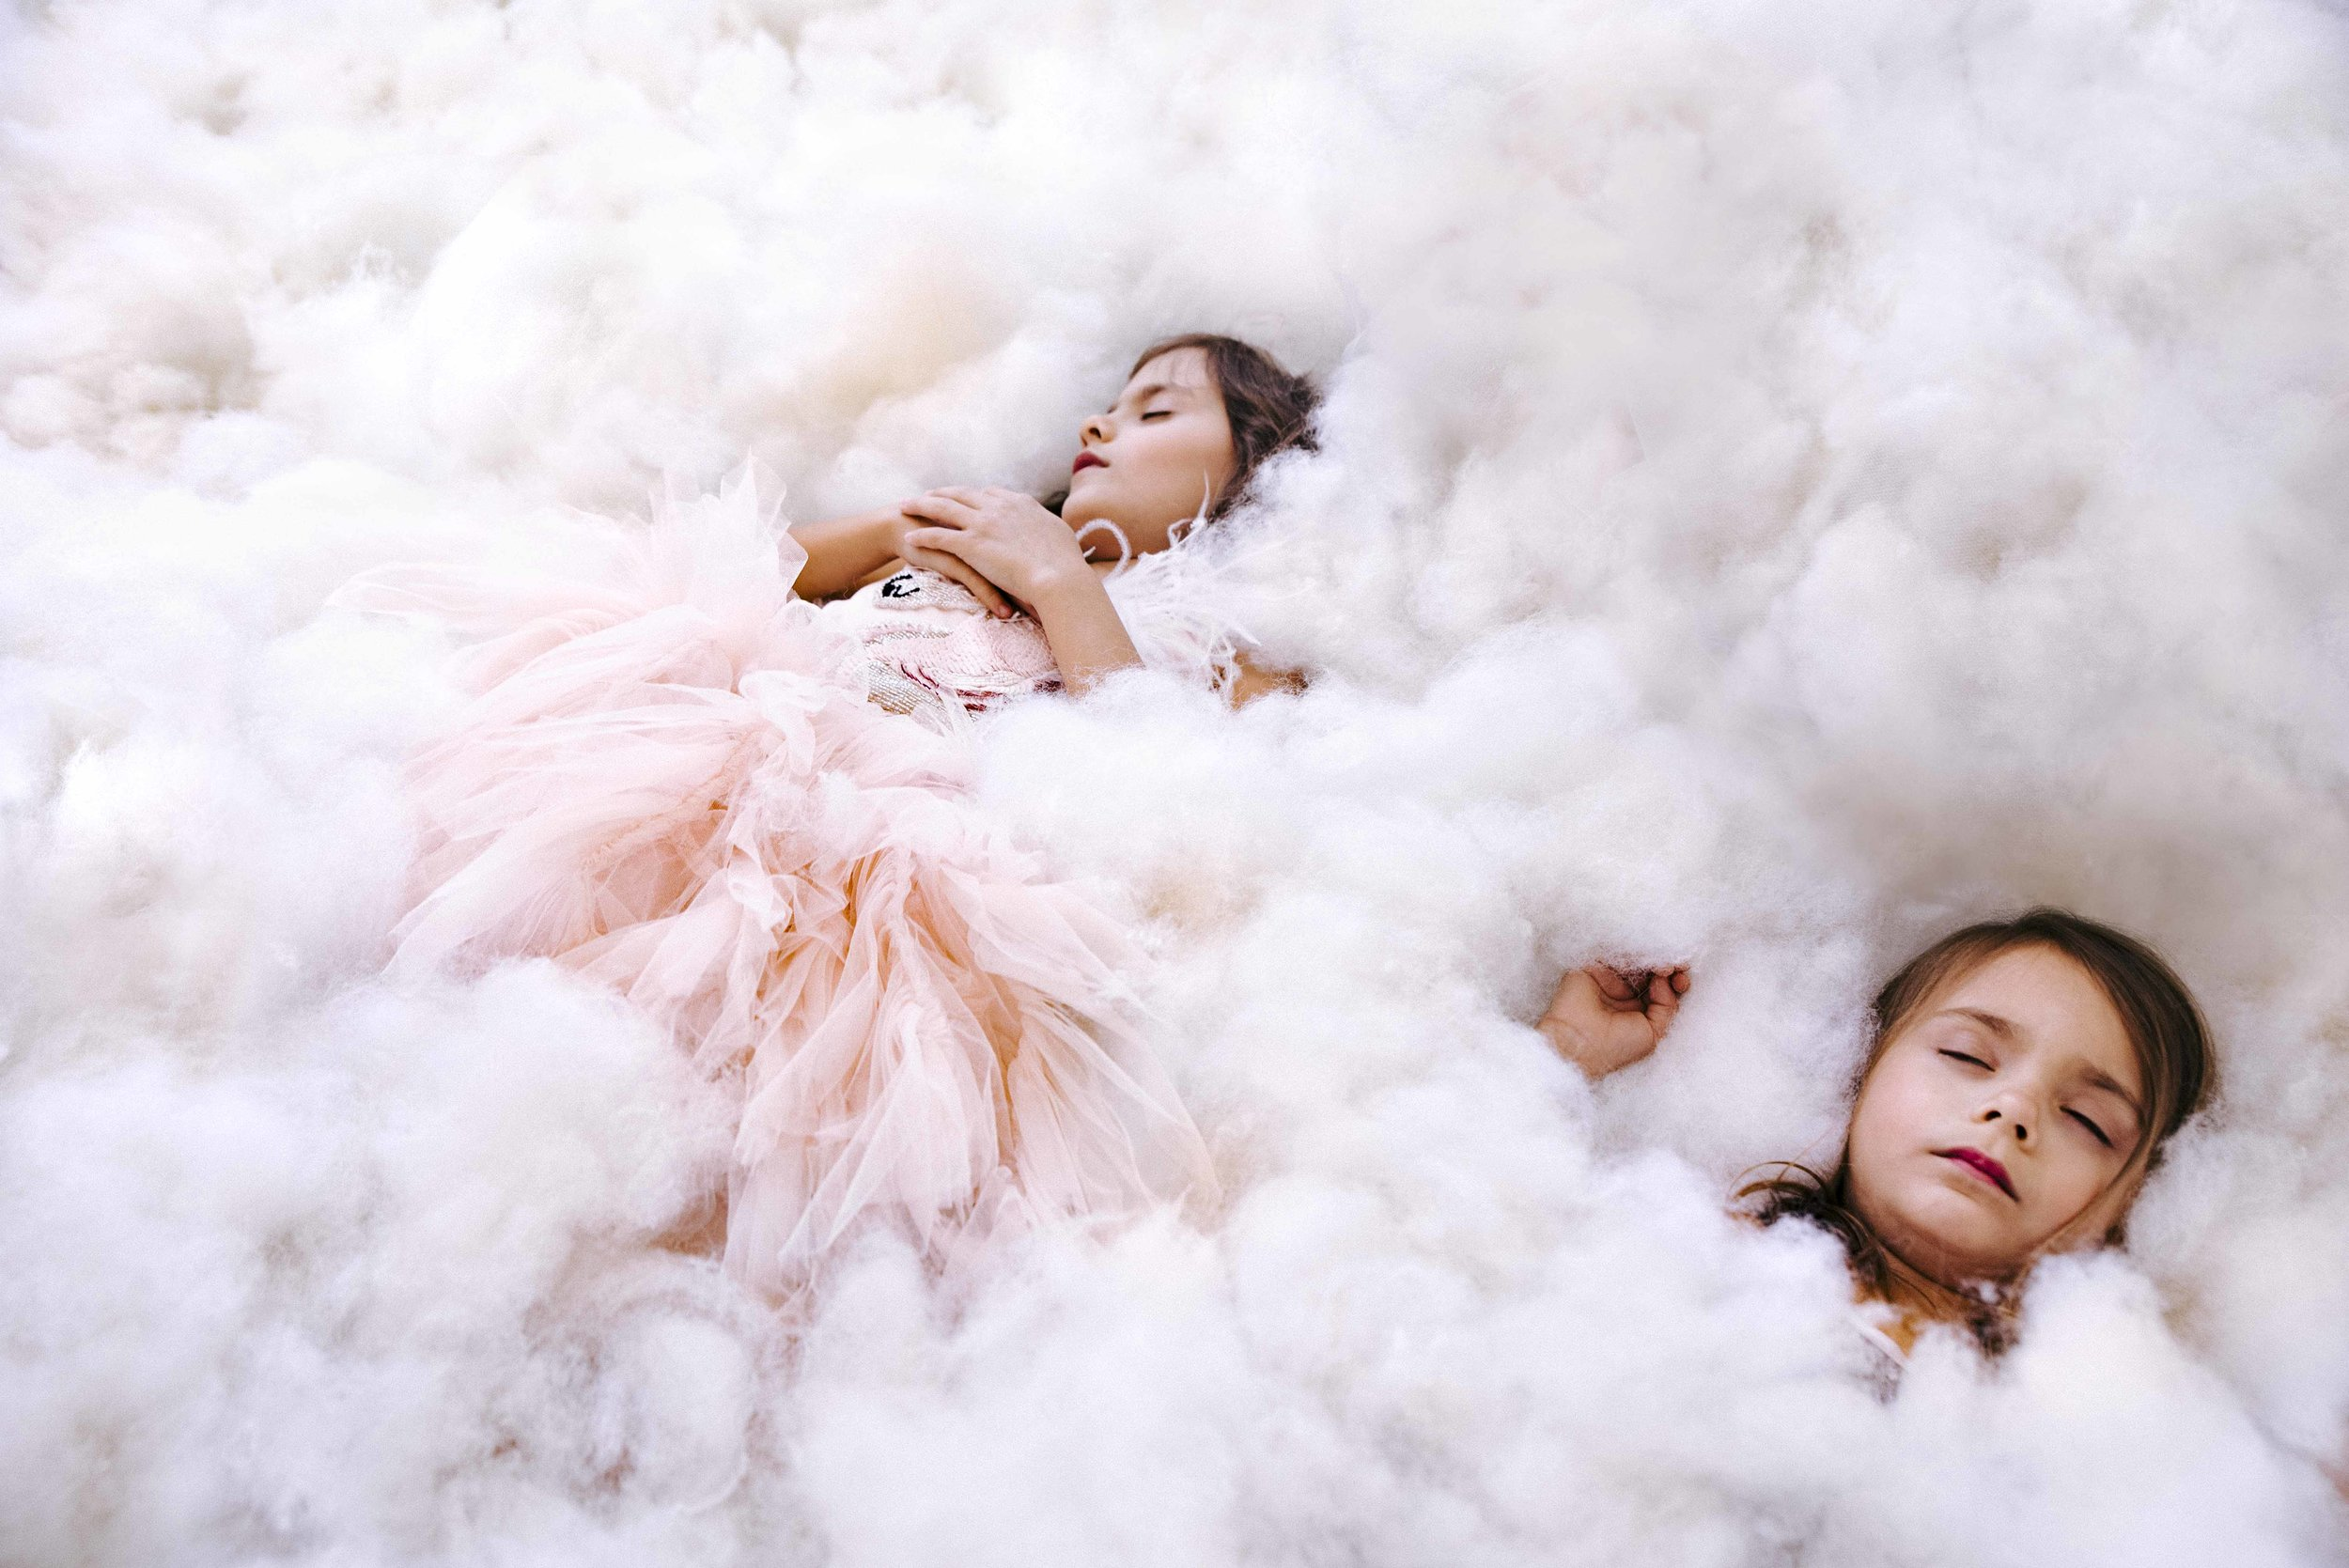 Ava + Lily's Daydream | Hello Daydreamer Photography | Salt Lake City Child and Dance Photographer